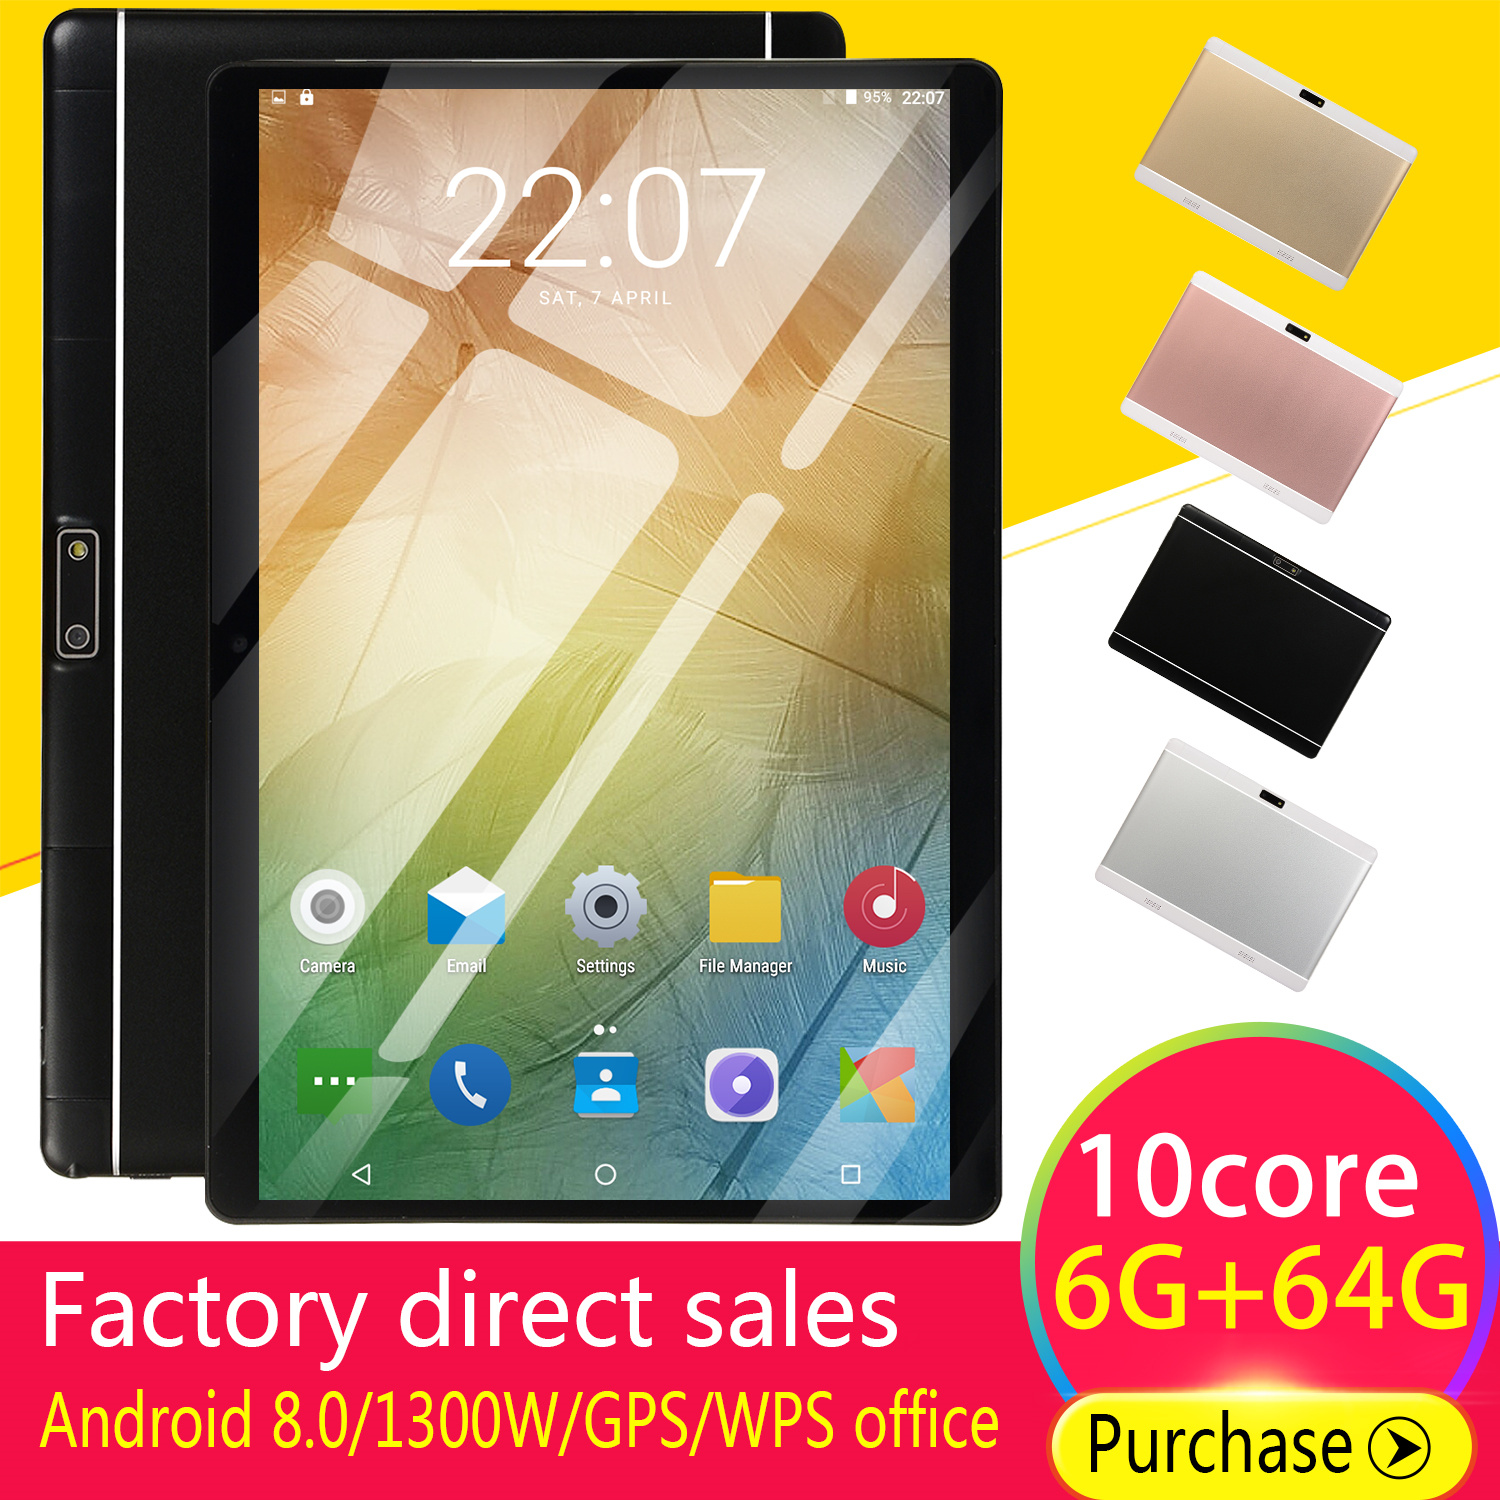 2019 WiFi Tablet PC 10 Inch Ten Core 4G Network Android 8.1 Arge 2560*1600 IPS Screen Dual SIM Dual Camera Rear 13.0 MP IPS